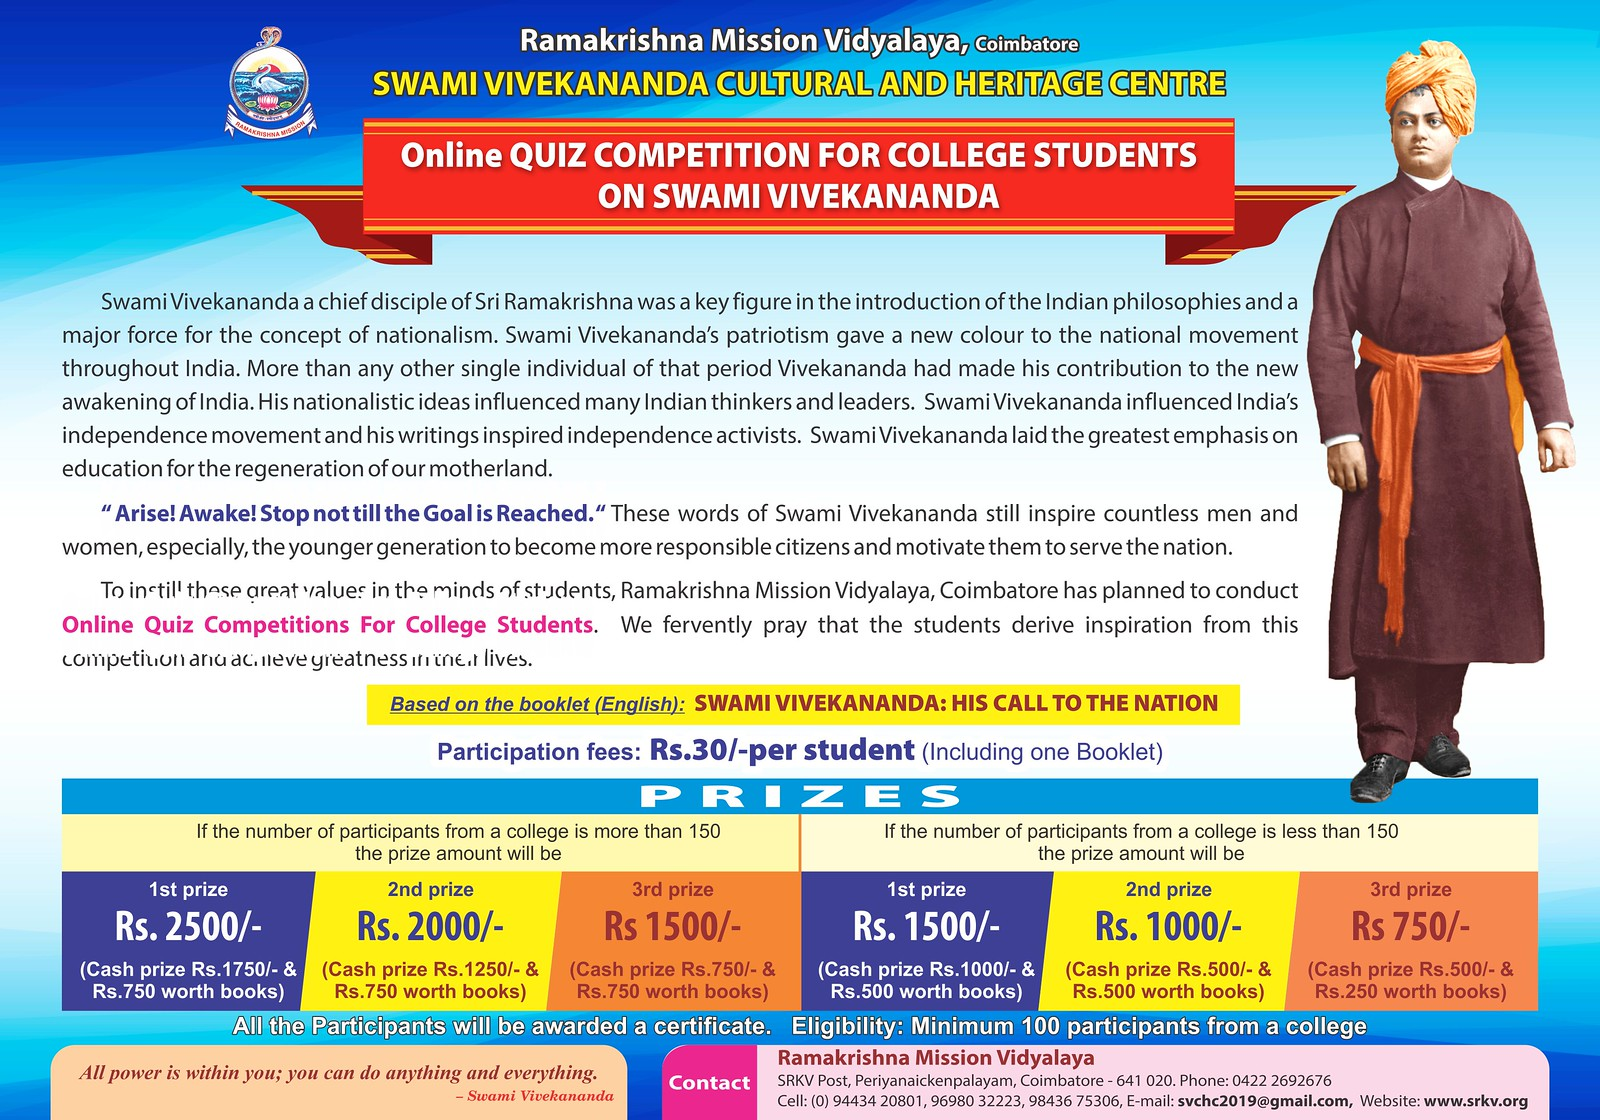 Online Quiz Competition for College Students on Swami Vivekananda